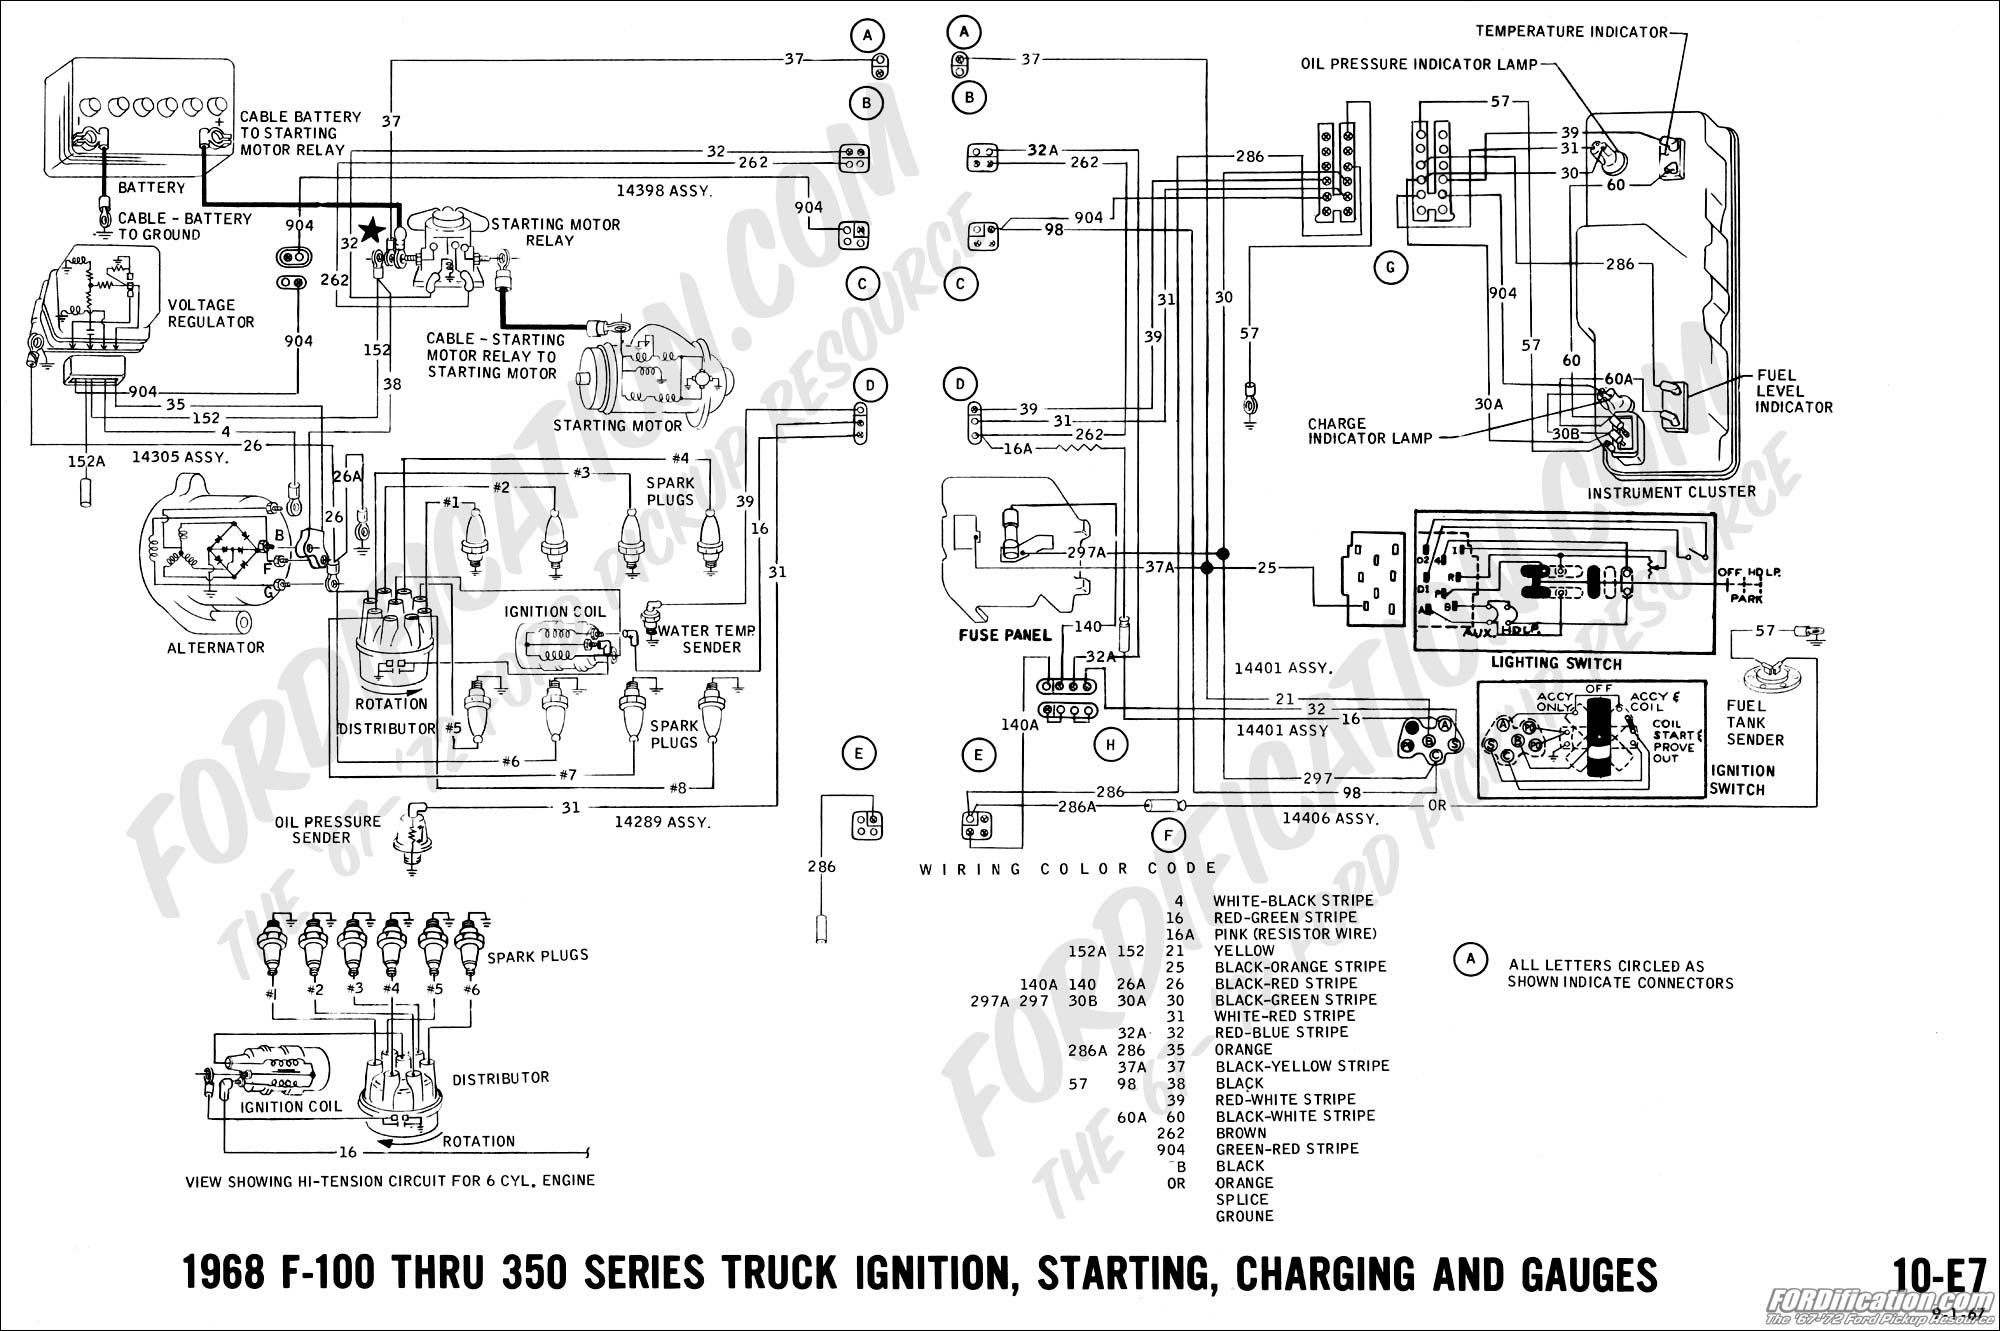 hight resolution of 1974 ford 302 wiring harness diagram wiring diagram third level 1990 f150 fuel system schematic 1974 ford mustang fuel system diagram